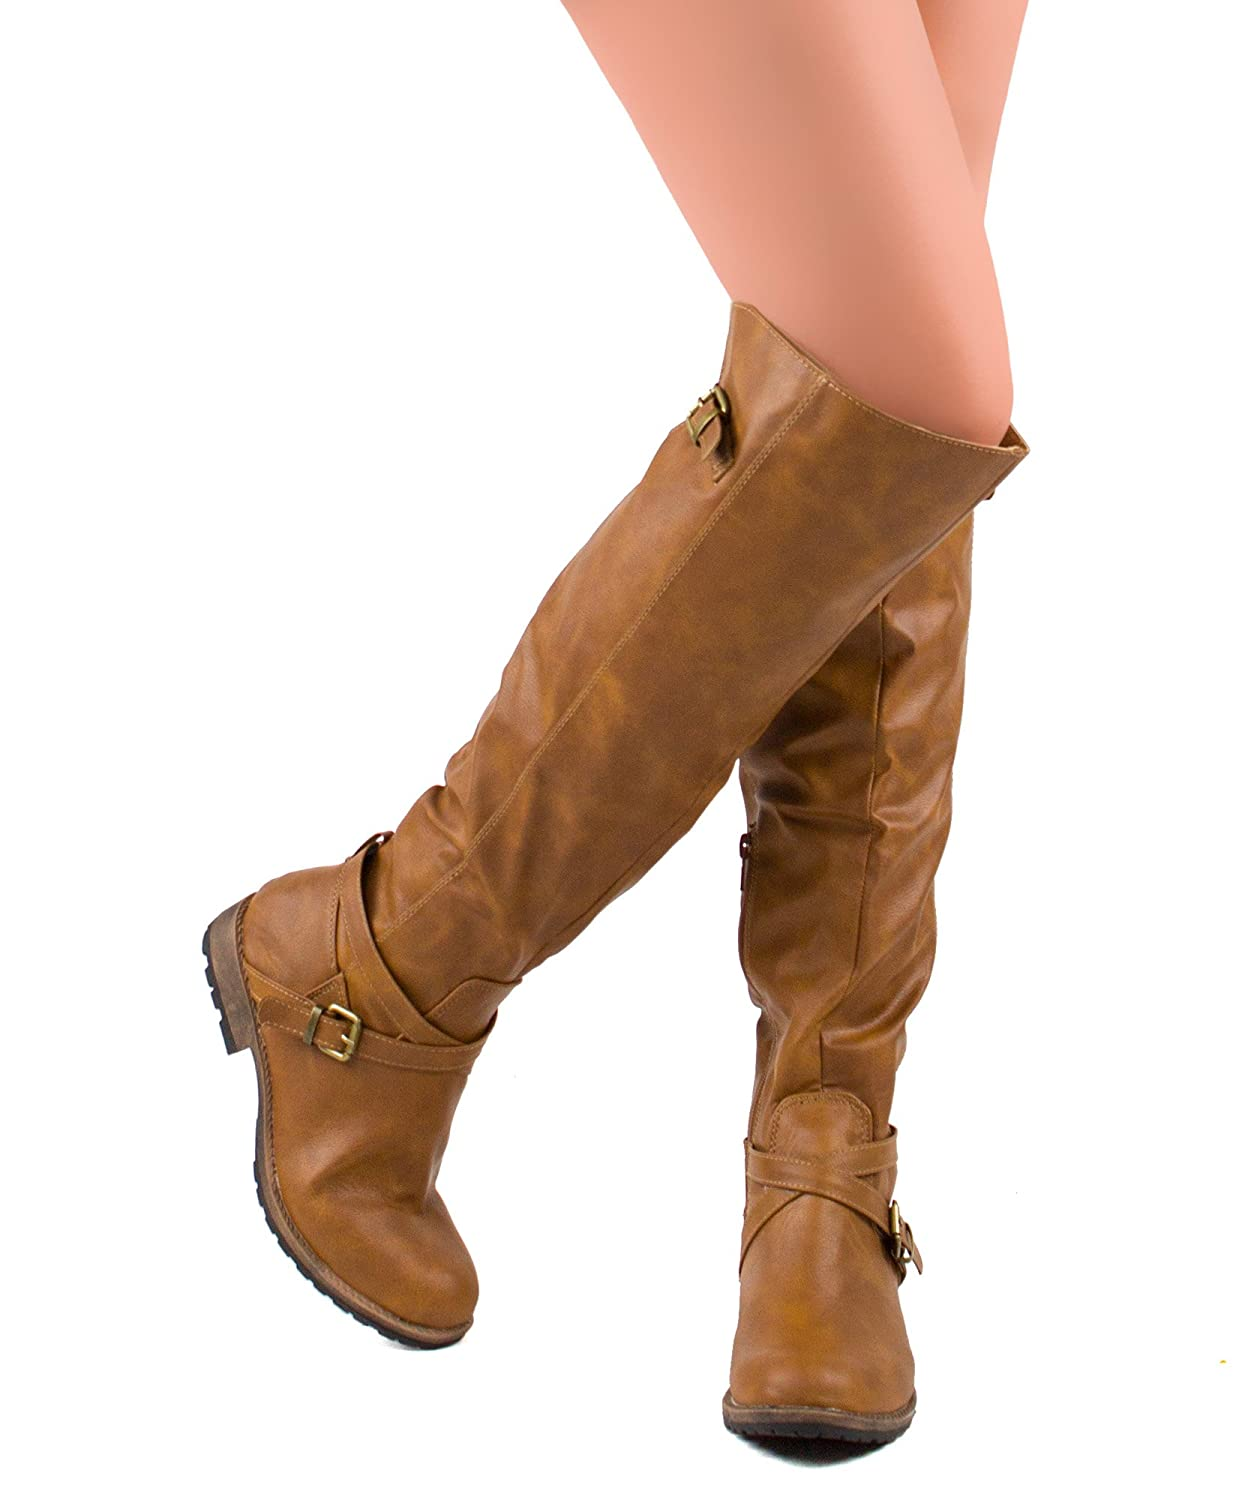 Women's Tan Strappy Buckle Over-the-Knee Block Heel Leatherette Boots